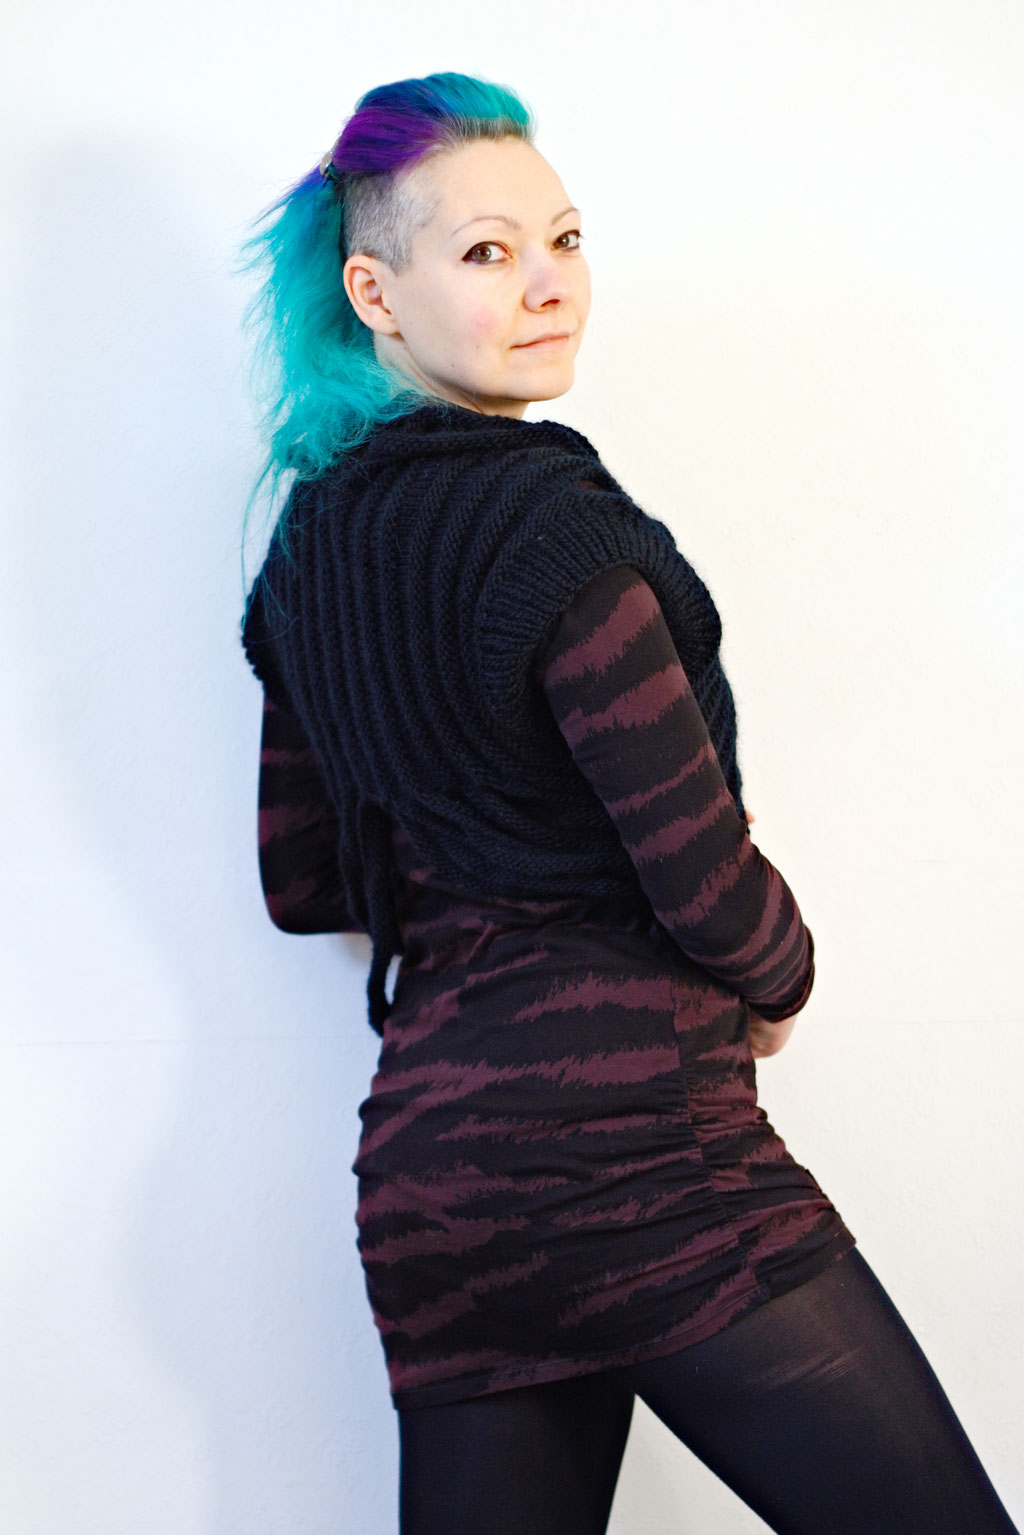 Zombie knitted vest & Crochet crop top of dreams - structured easy knit - Zebraspider Eco Anti-Fashion Blog